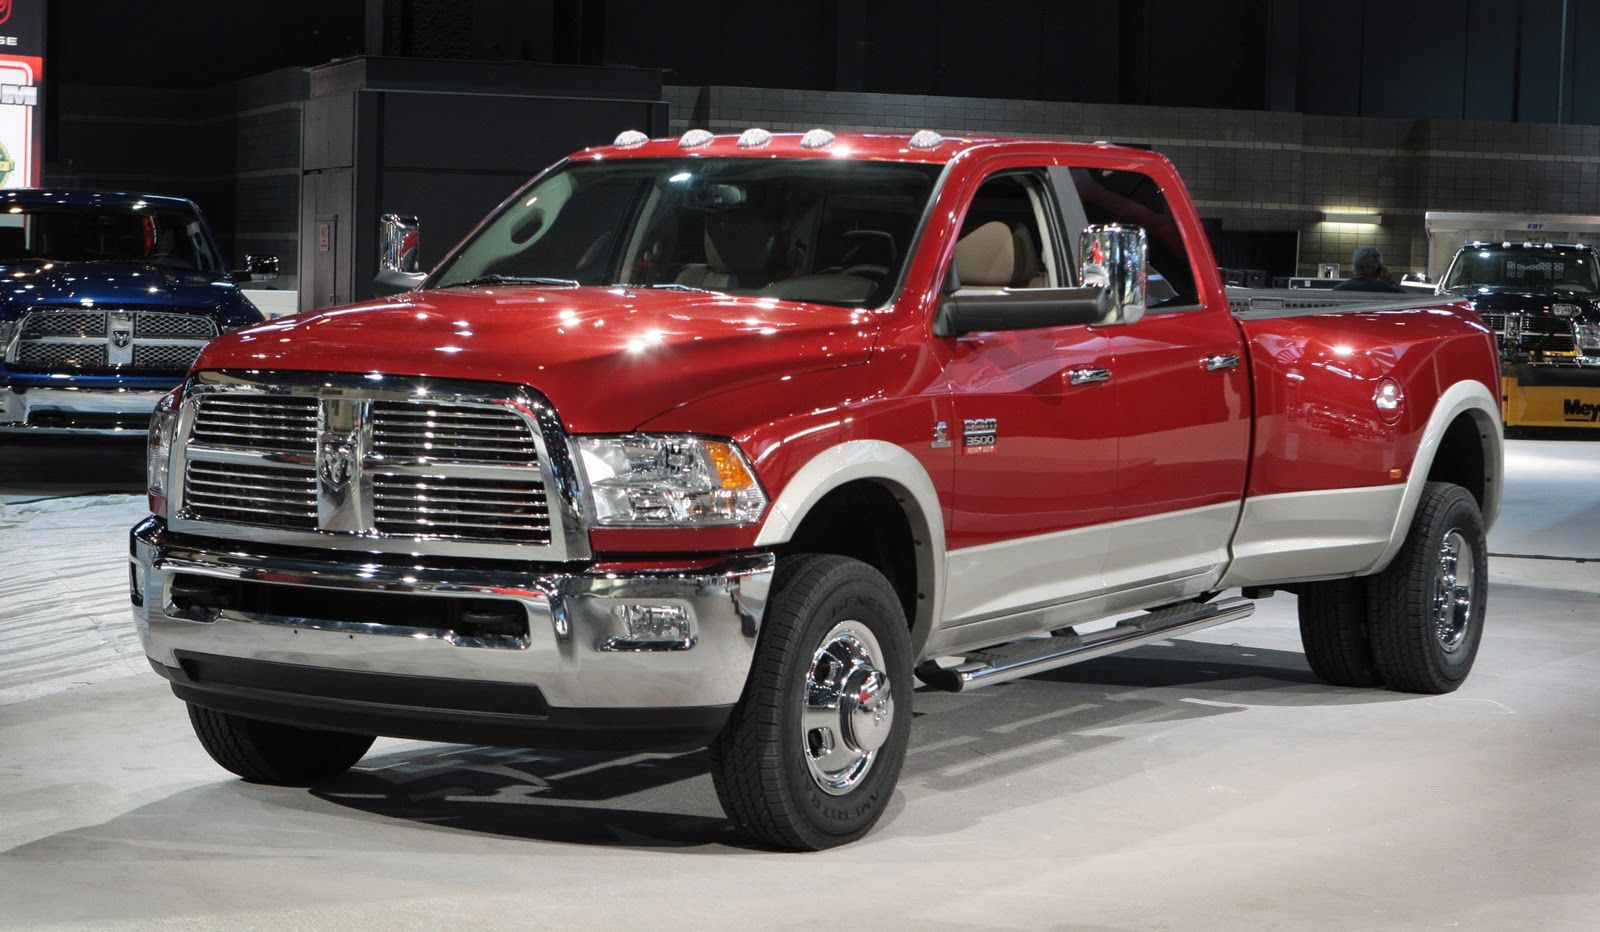 dodge ram pickup 2500 review - 2015 Dodge Ram 2500 Red